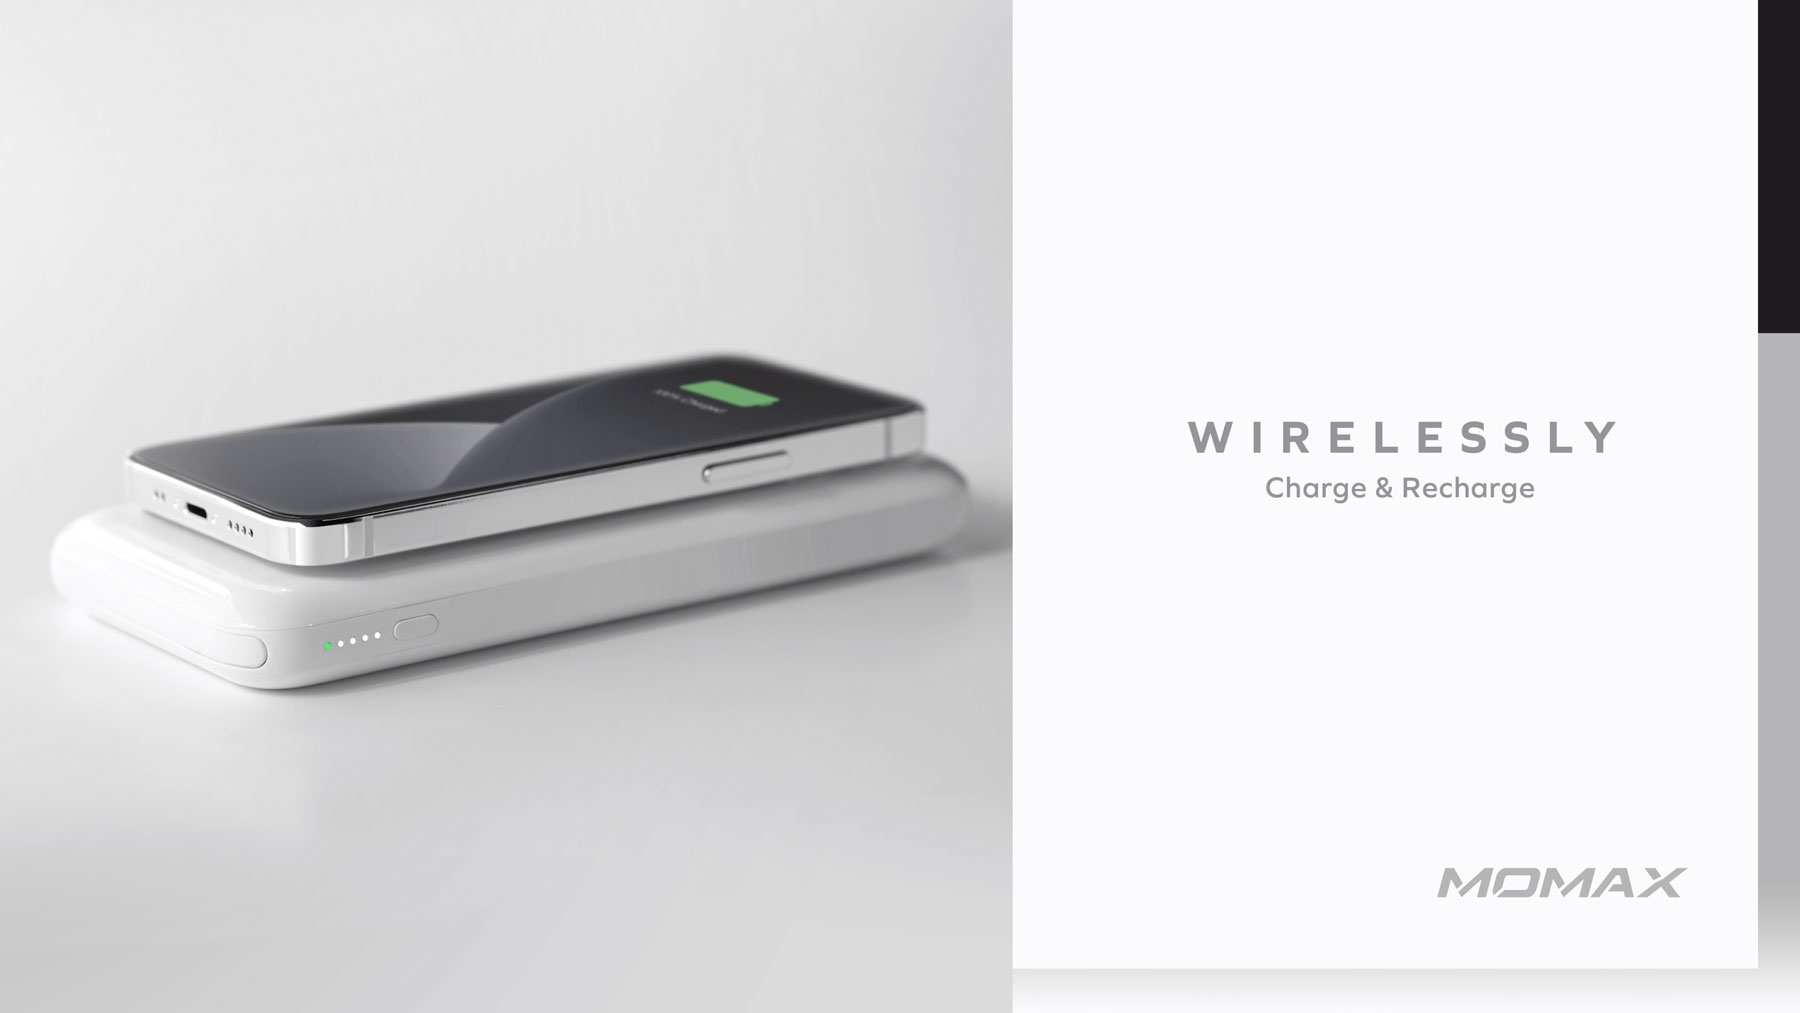 Momax Q. Power One Dual Wireless External Battery Pack: Wirelessly Charge and Recharge